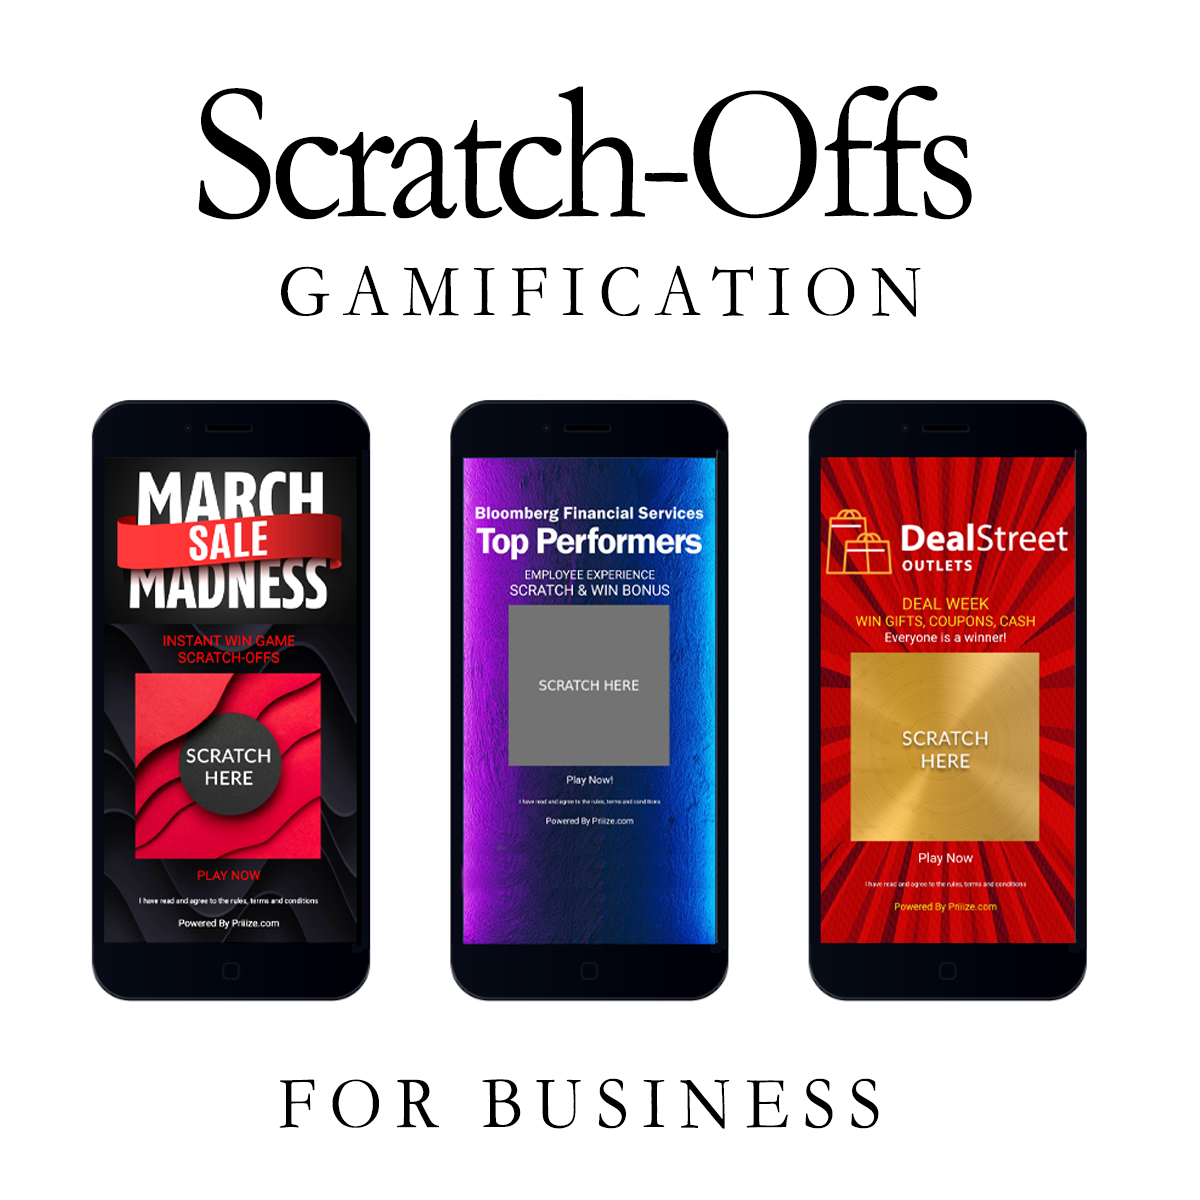 Scratch offs gamification inbusiness and HR